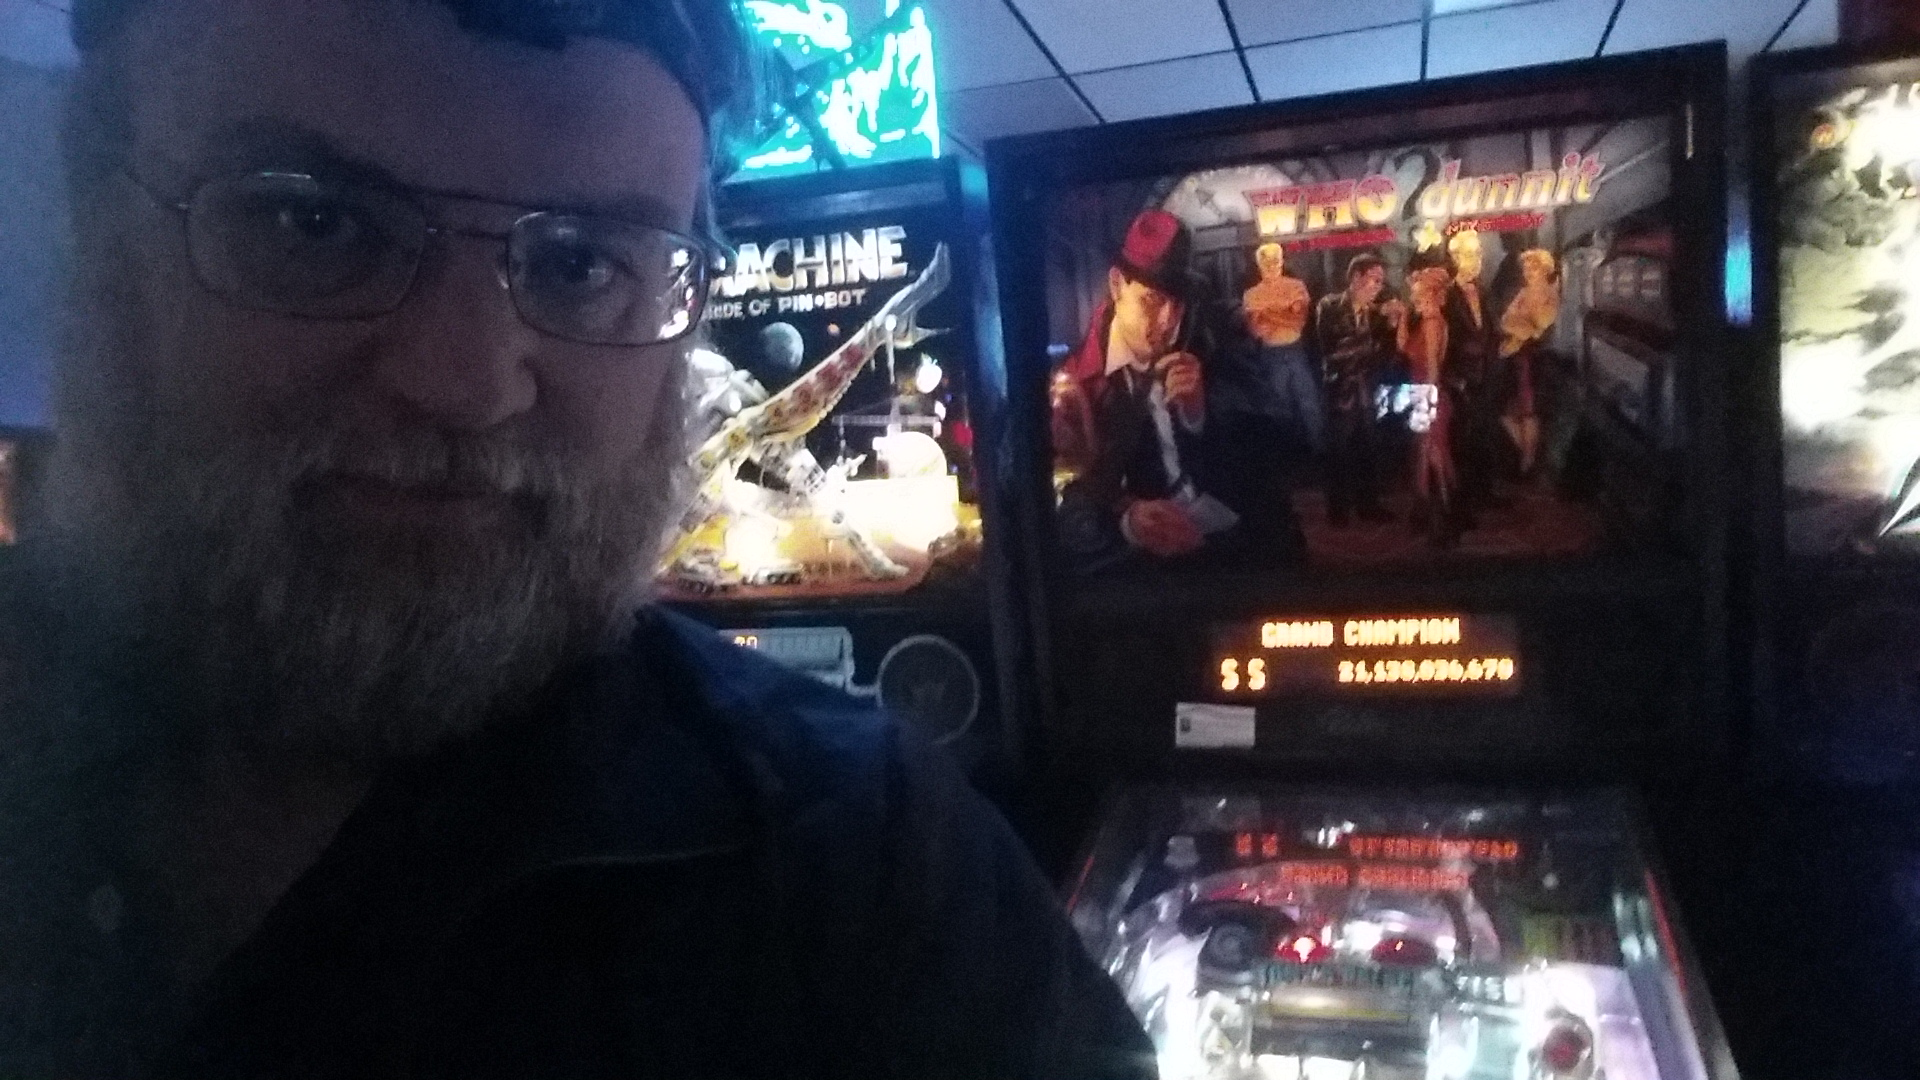 SeanStewart: Who Dunnit (Pinball: 3 Balls) 21,138,036,670 points on 2016-12-17 12:53:02